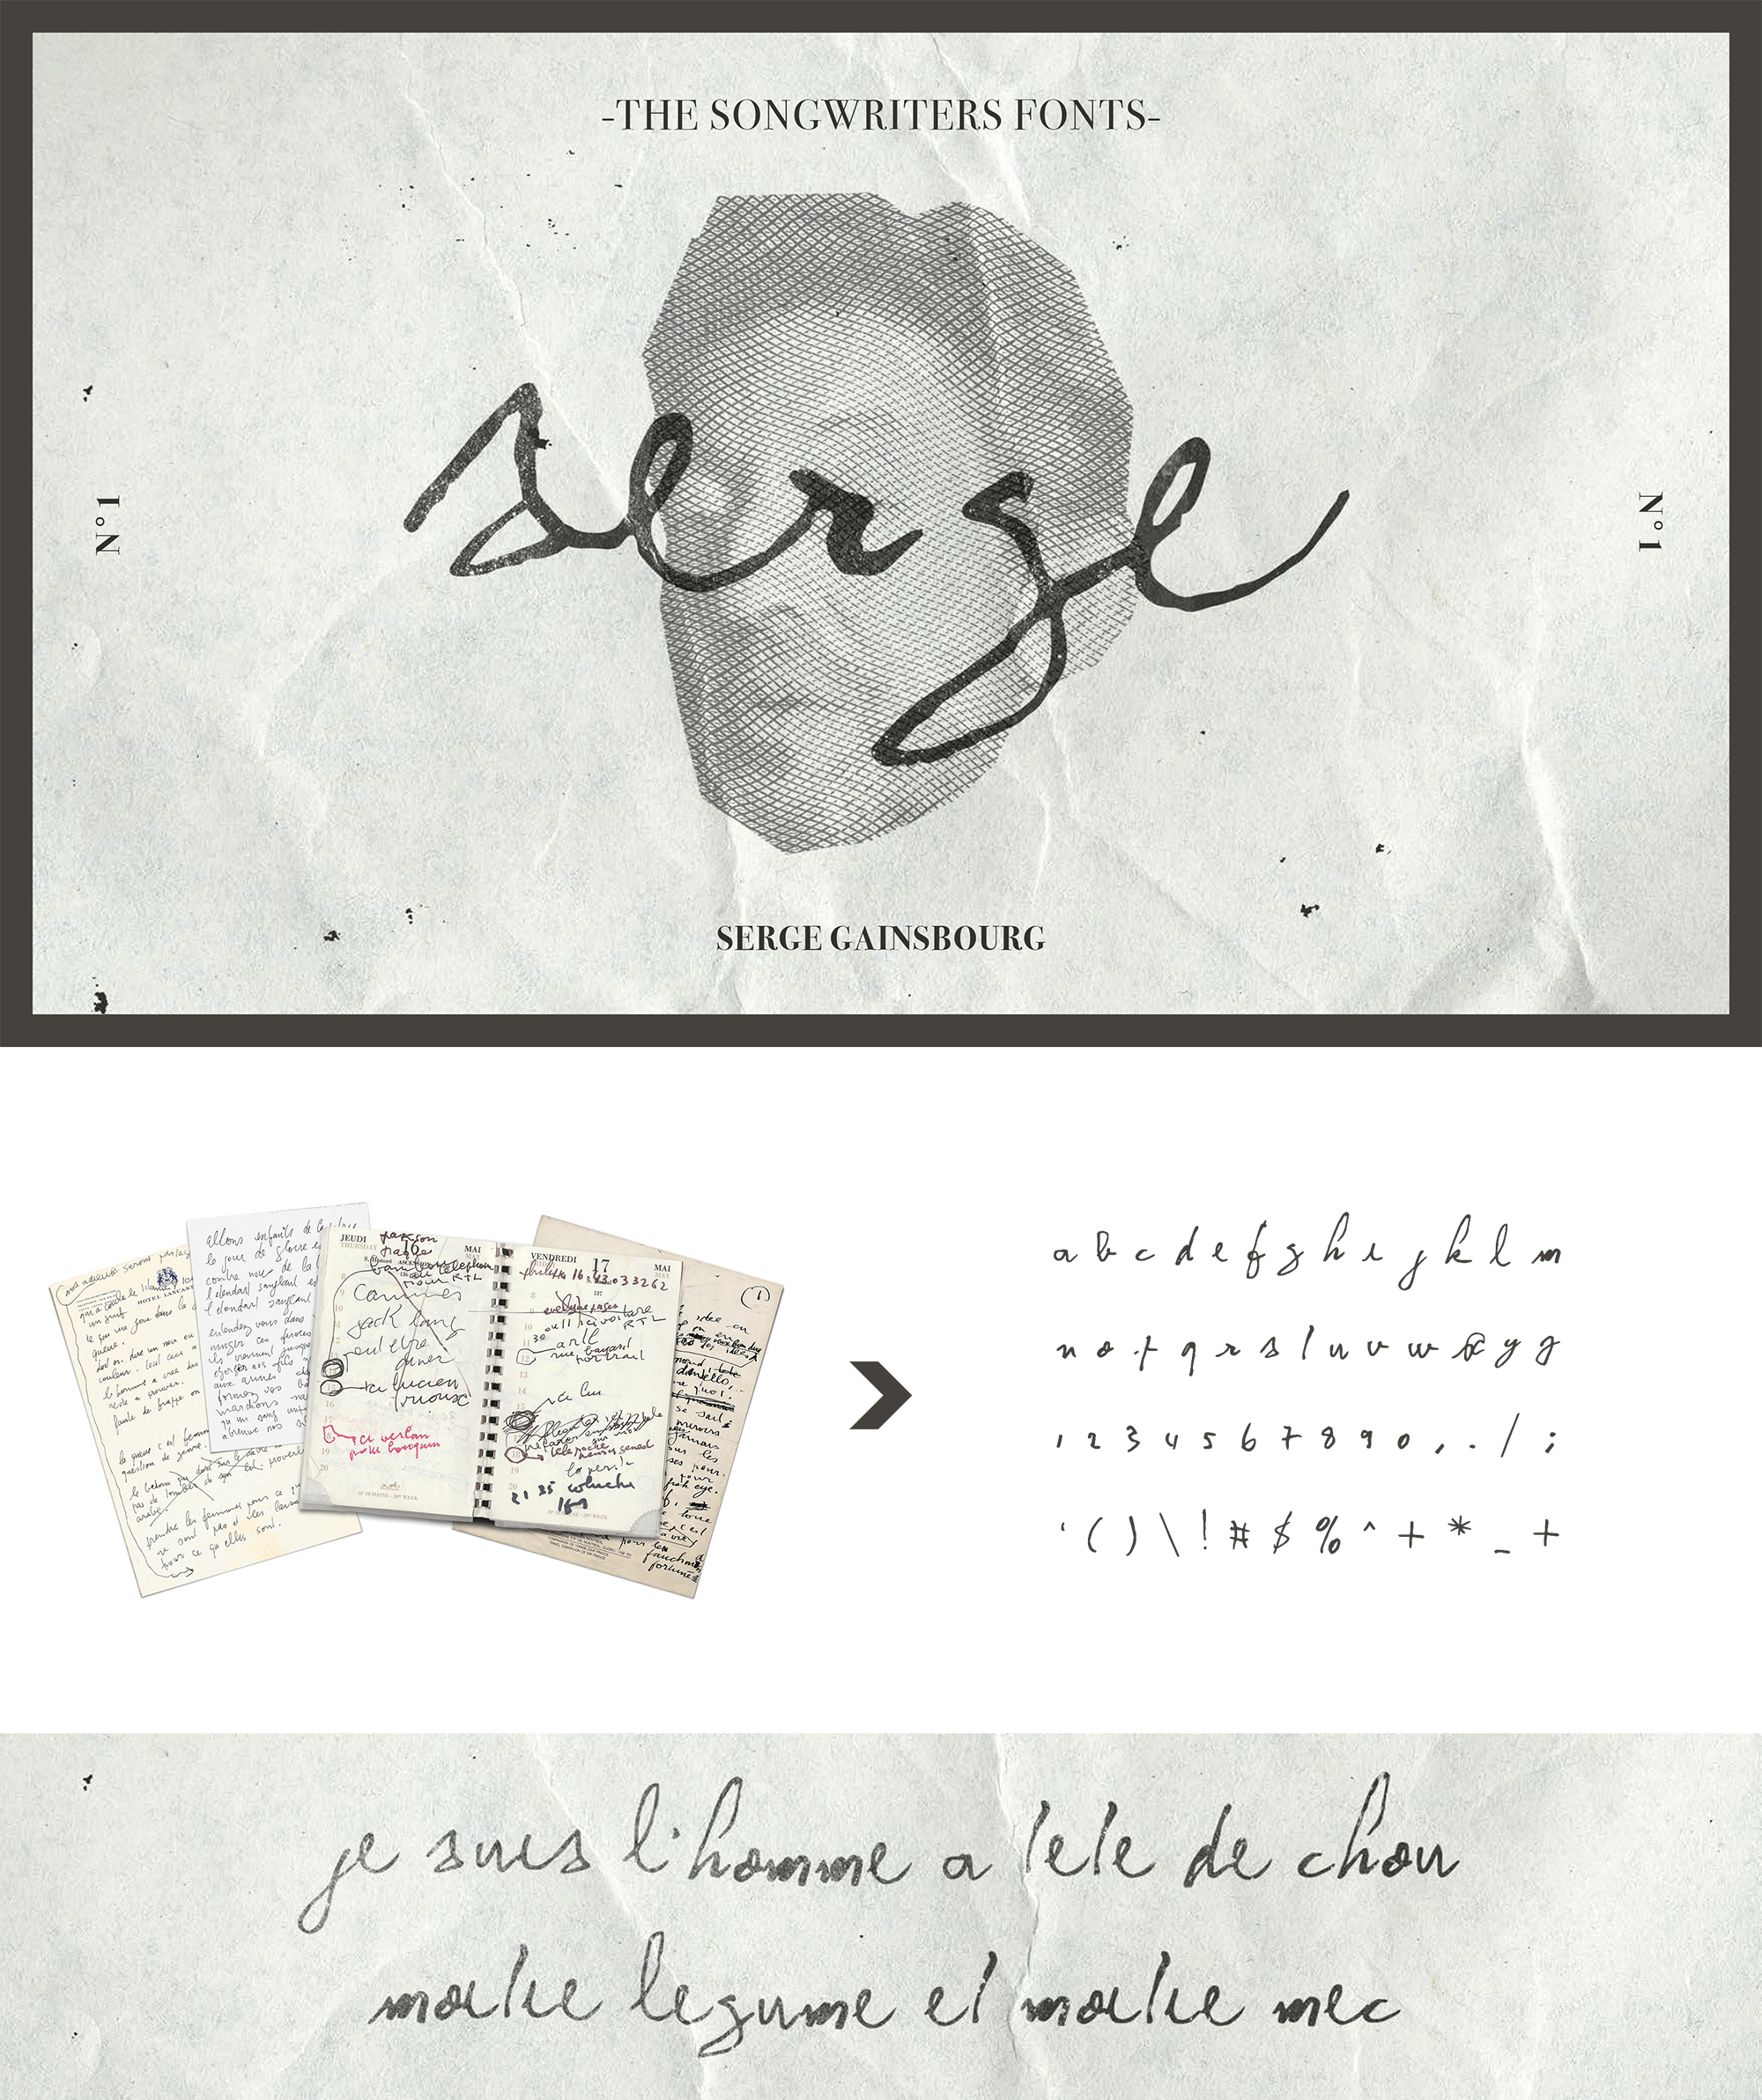 SONGWRITERS FONTS